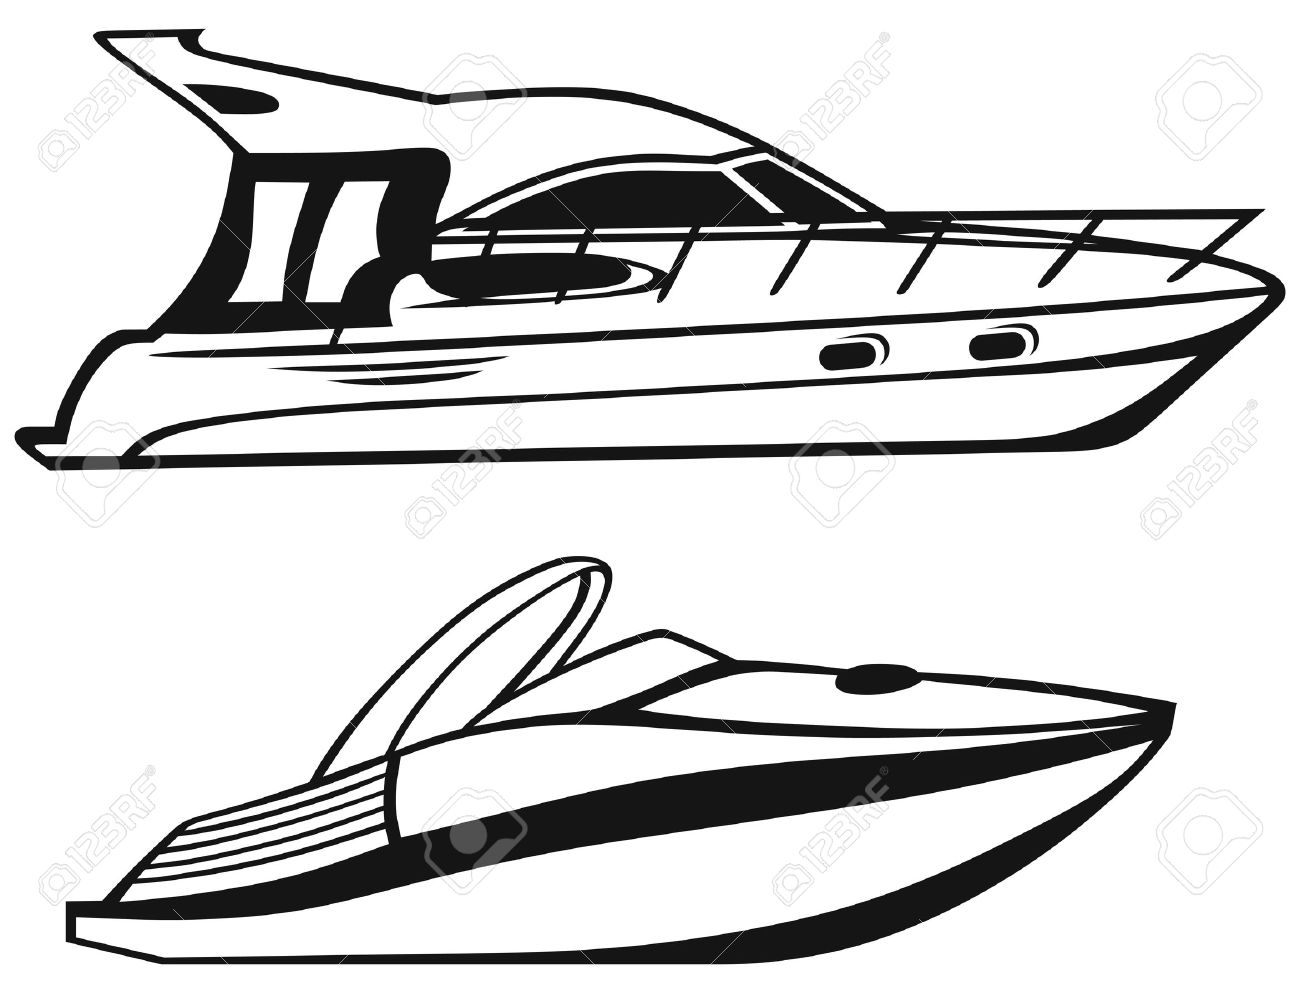 yacht clipart black and white_3-yacht clipart black and white_3-21